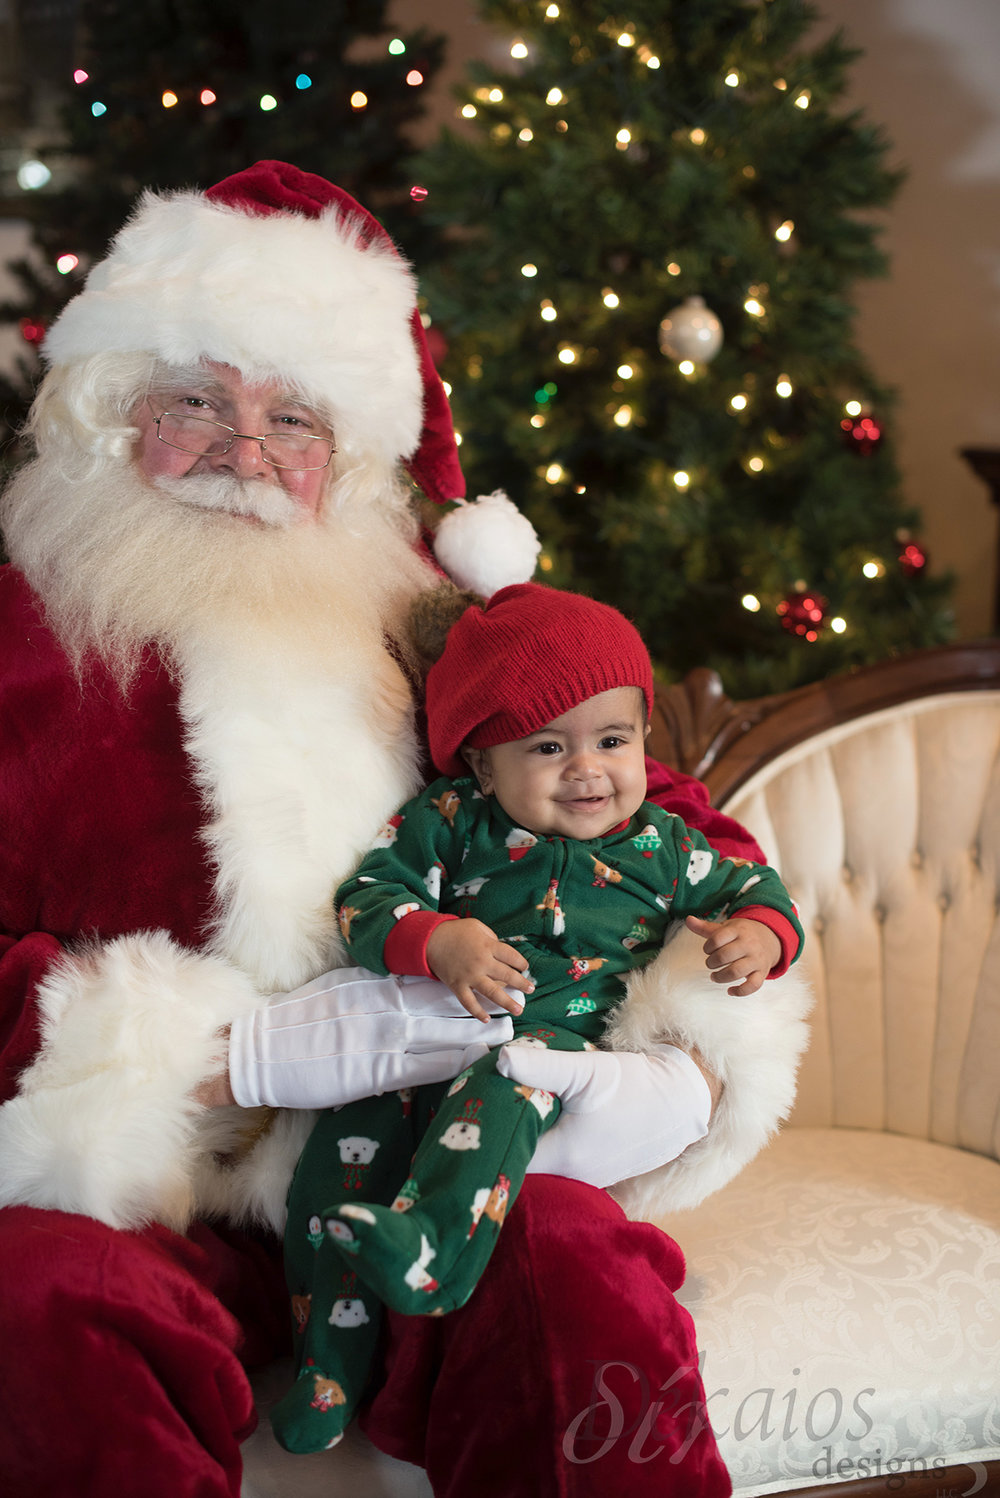 It was this little girl's first Christmas, so sweet xoxo